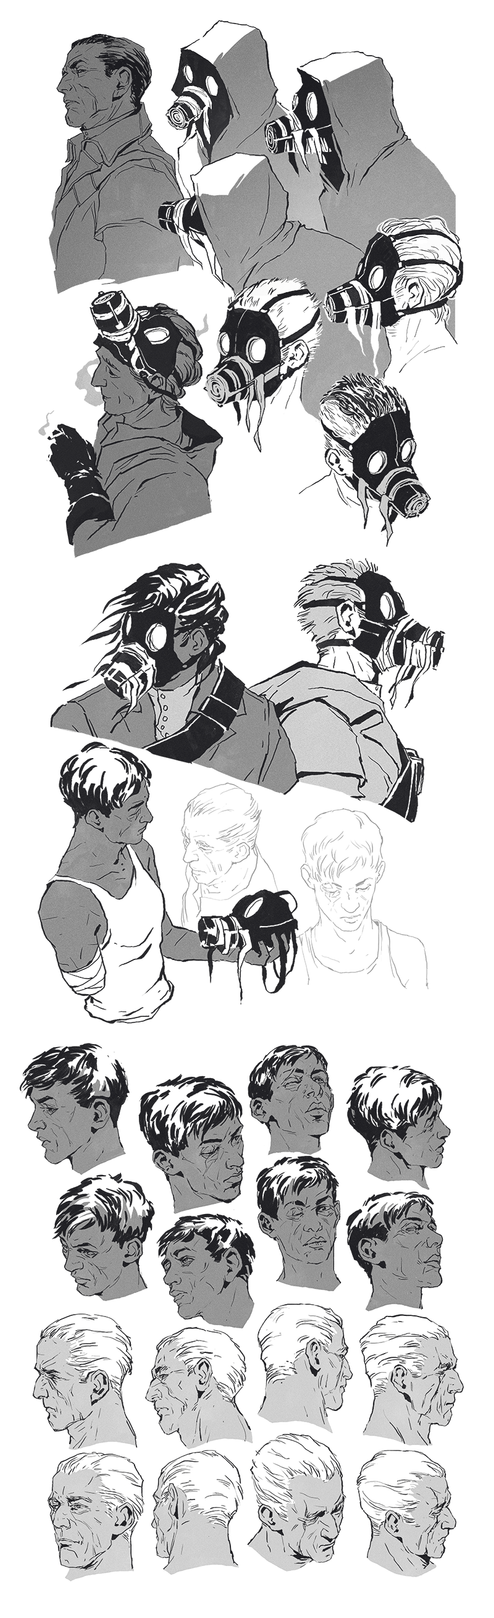 Sketchdump: Whalers by coupleofkooks